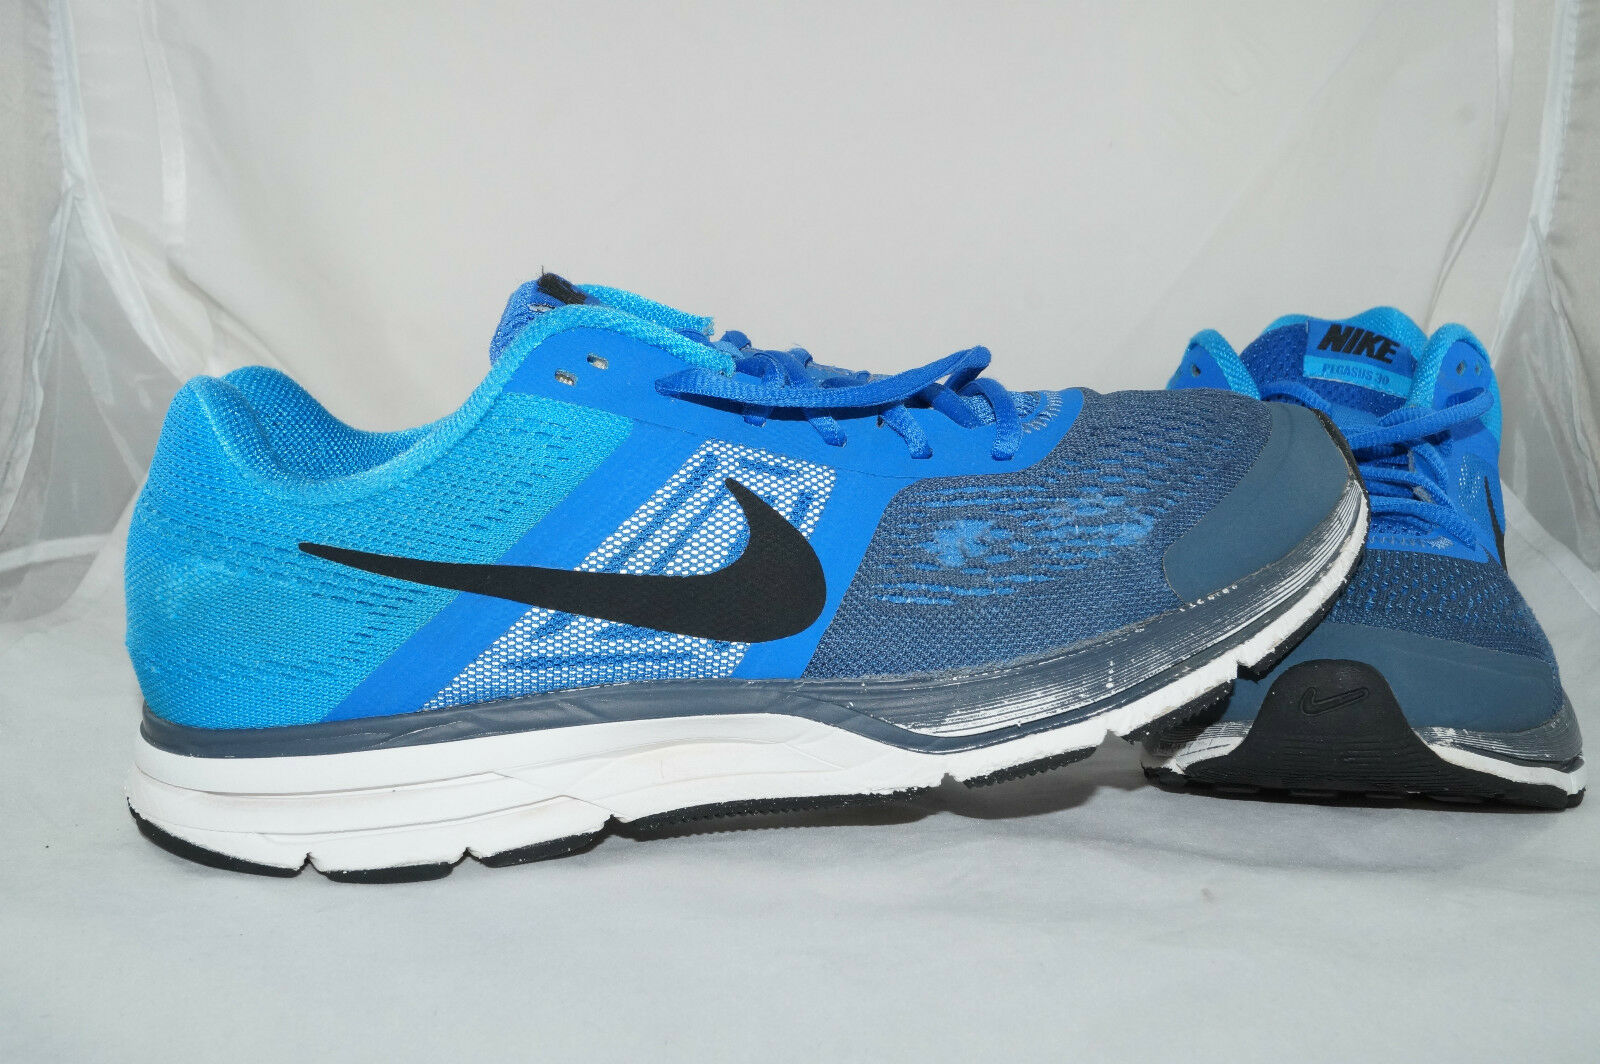 Nike Air Pegasus Pegasus Air +30 GR: 44 - 43,5 Blau Running LaufZapatos Jogging 7f5361